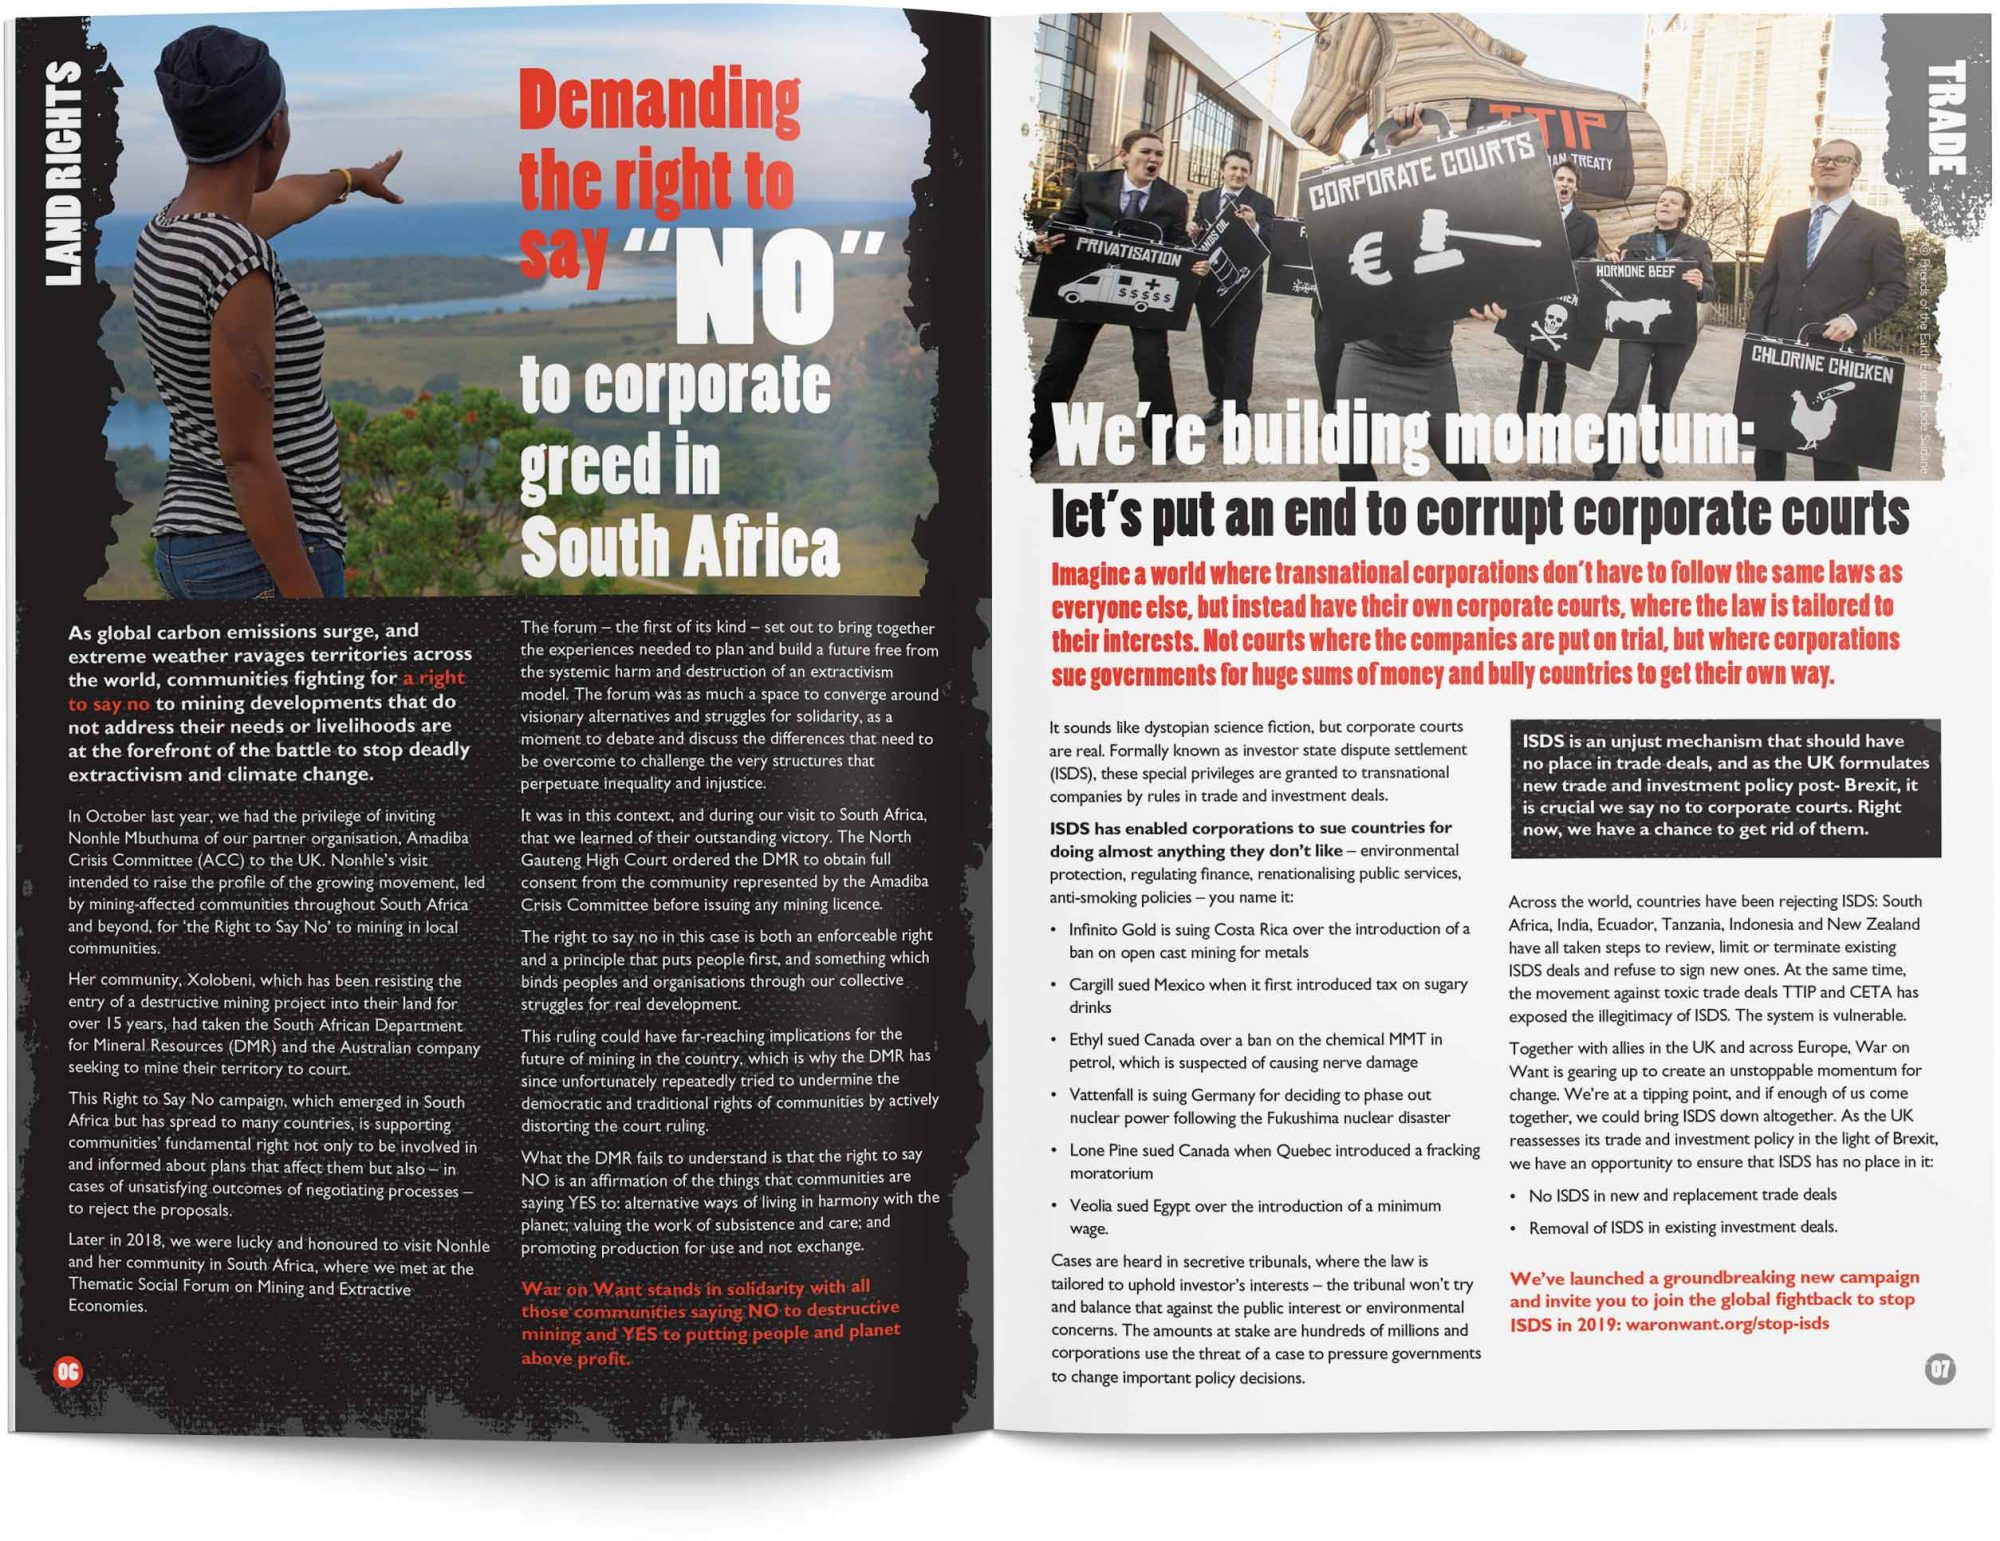 Up Front supporters' newsletter for War on Want - spread